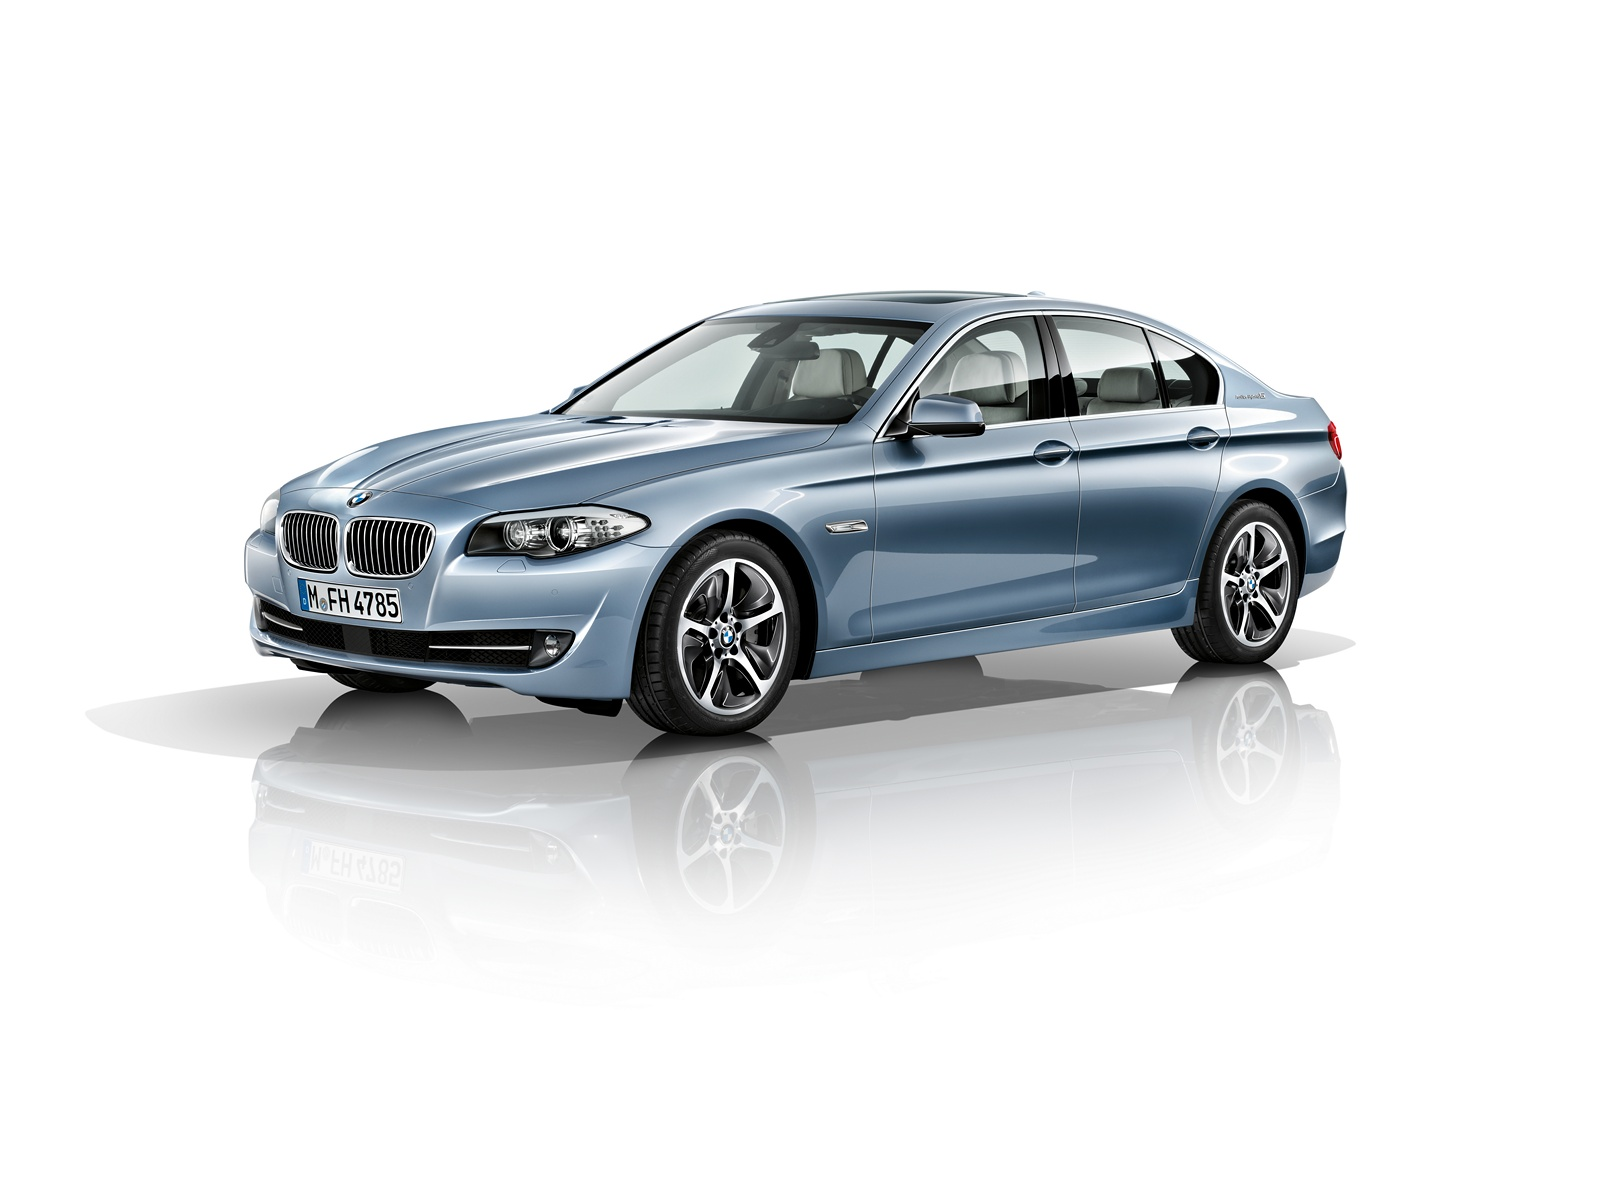 2012 bmw activehybrid 5 07